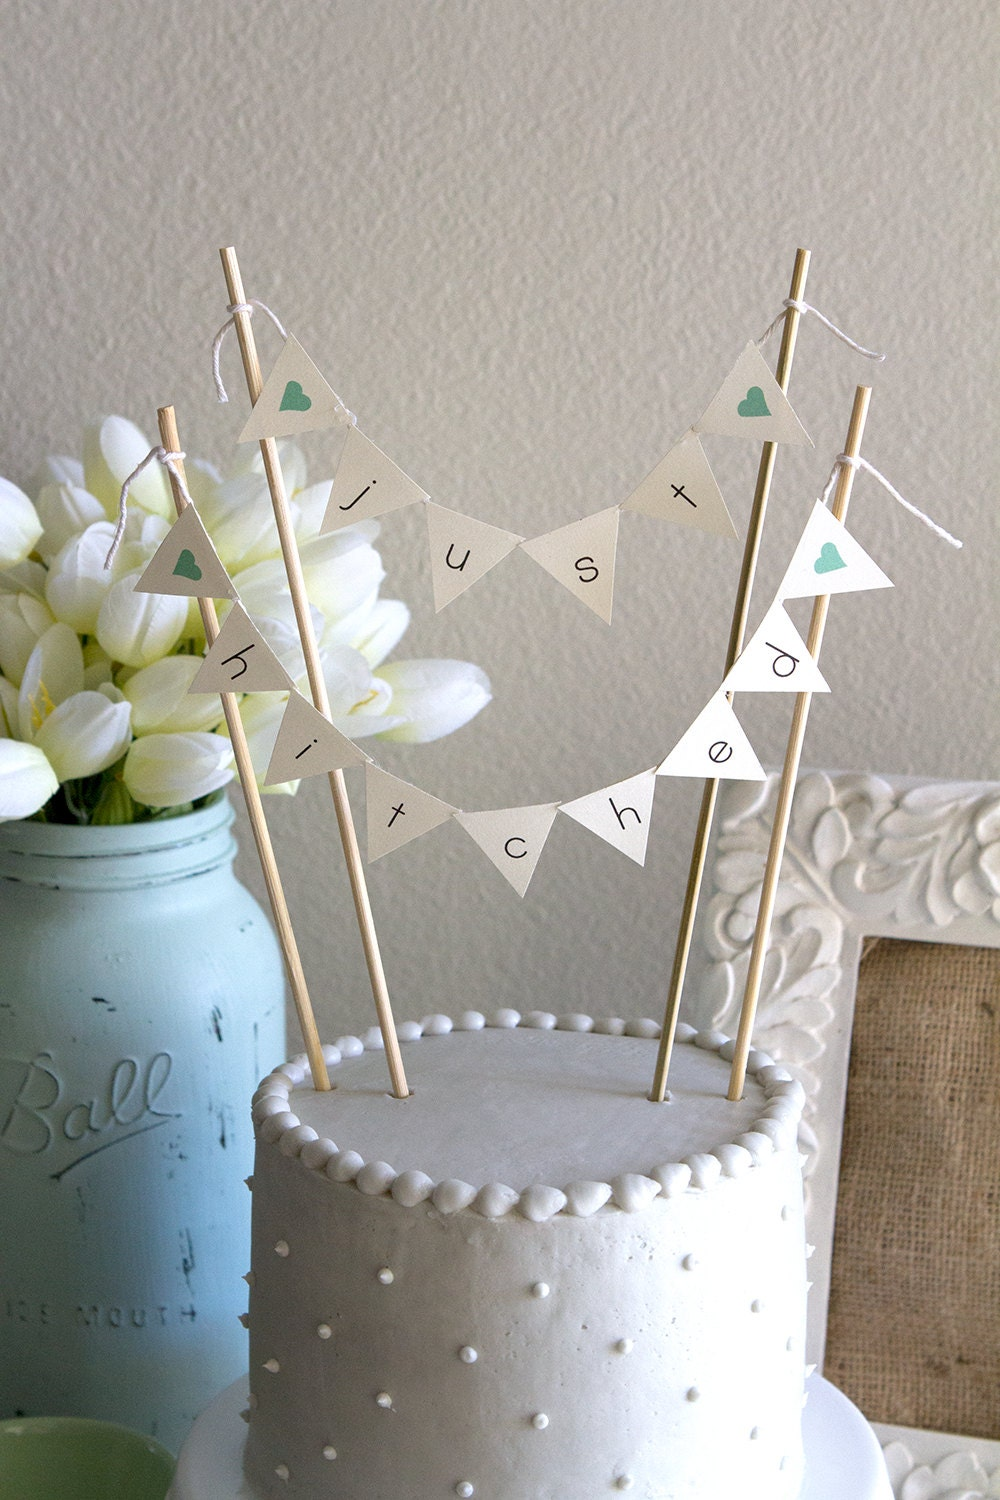 just hitched burlap alternative bunting banner wedding cake. Black Bedroom Furniture Sets. Home Design Ideas